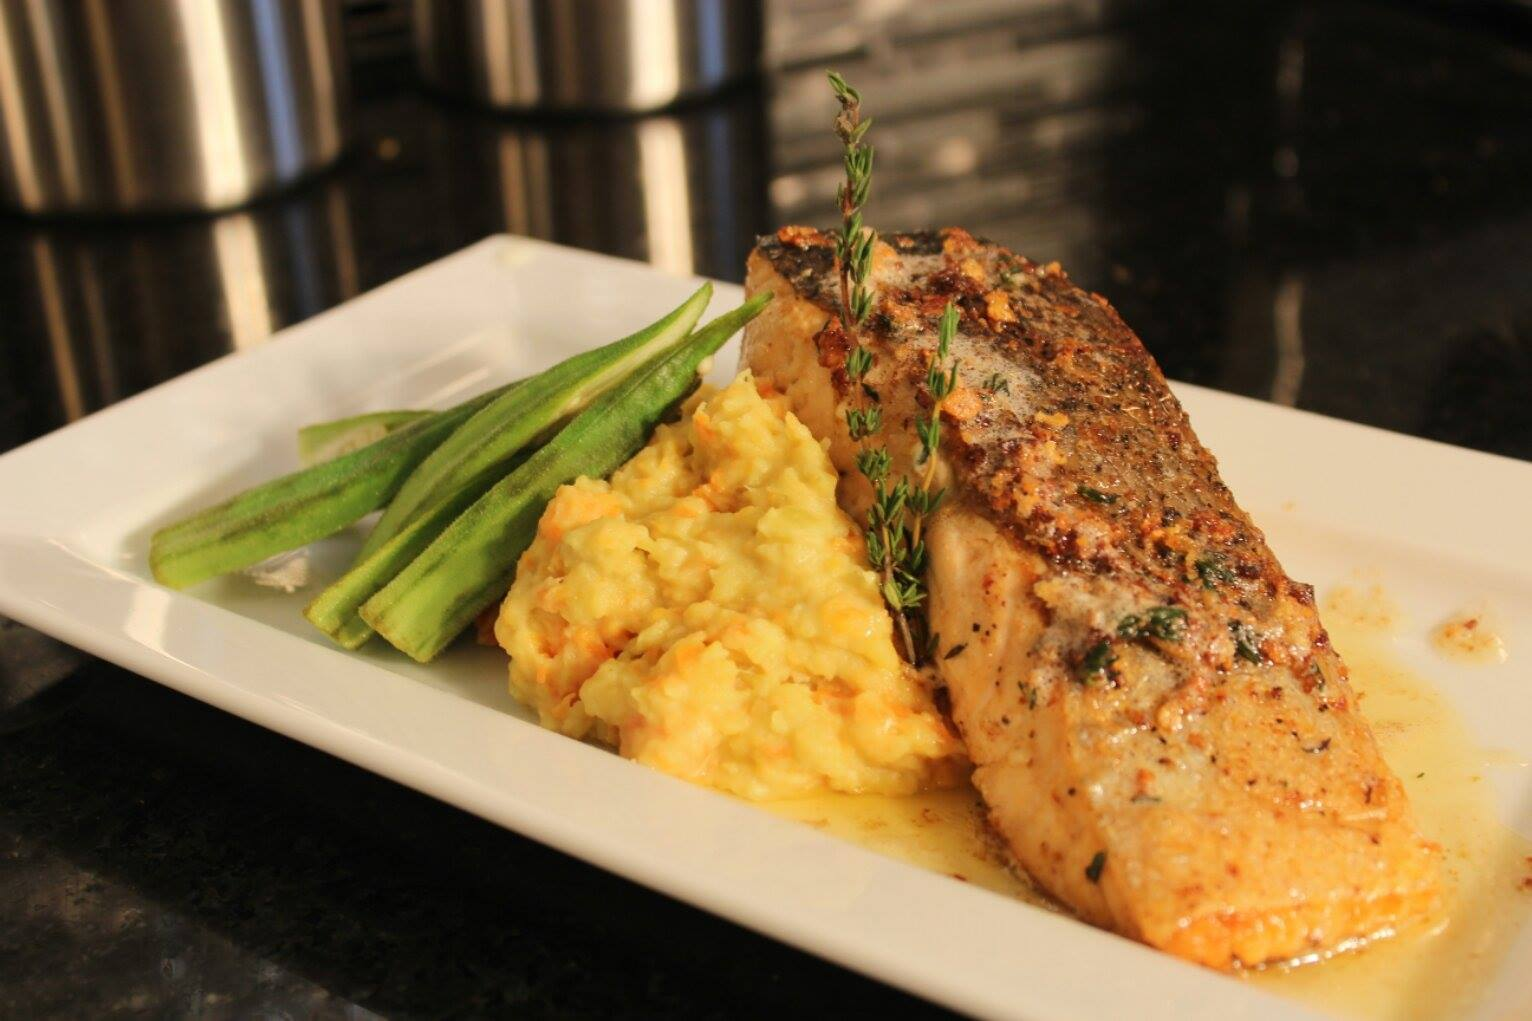 Pan-seared Salmon With Garlic and Thyme Brown Butter Sauce